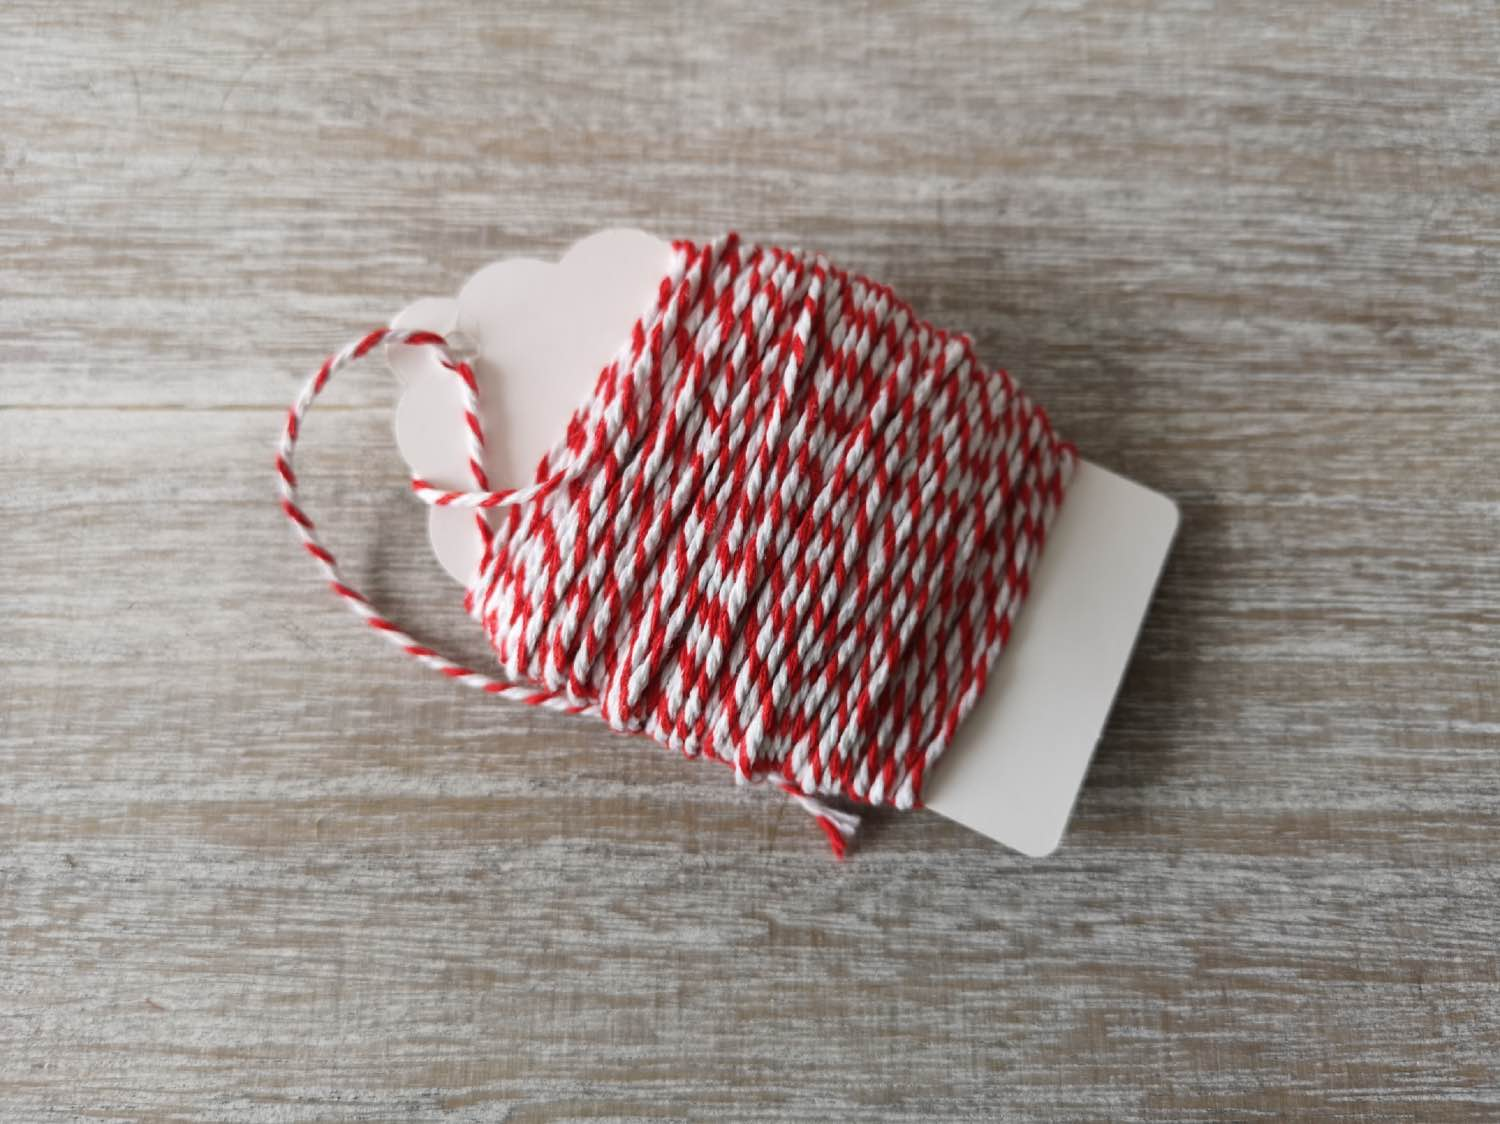 supplies-red-bakers-twine-for-holiday-decoration-diy